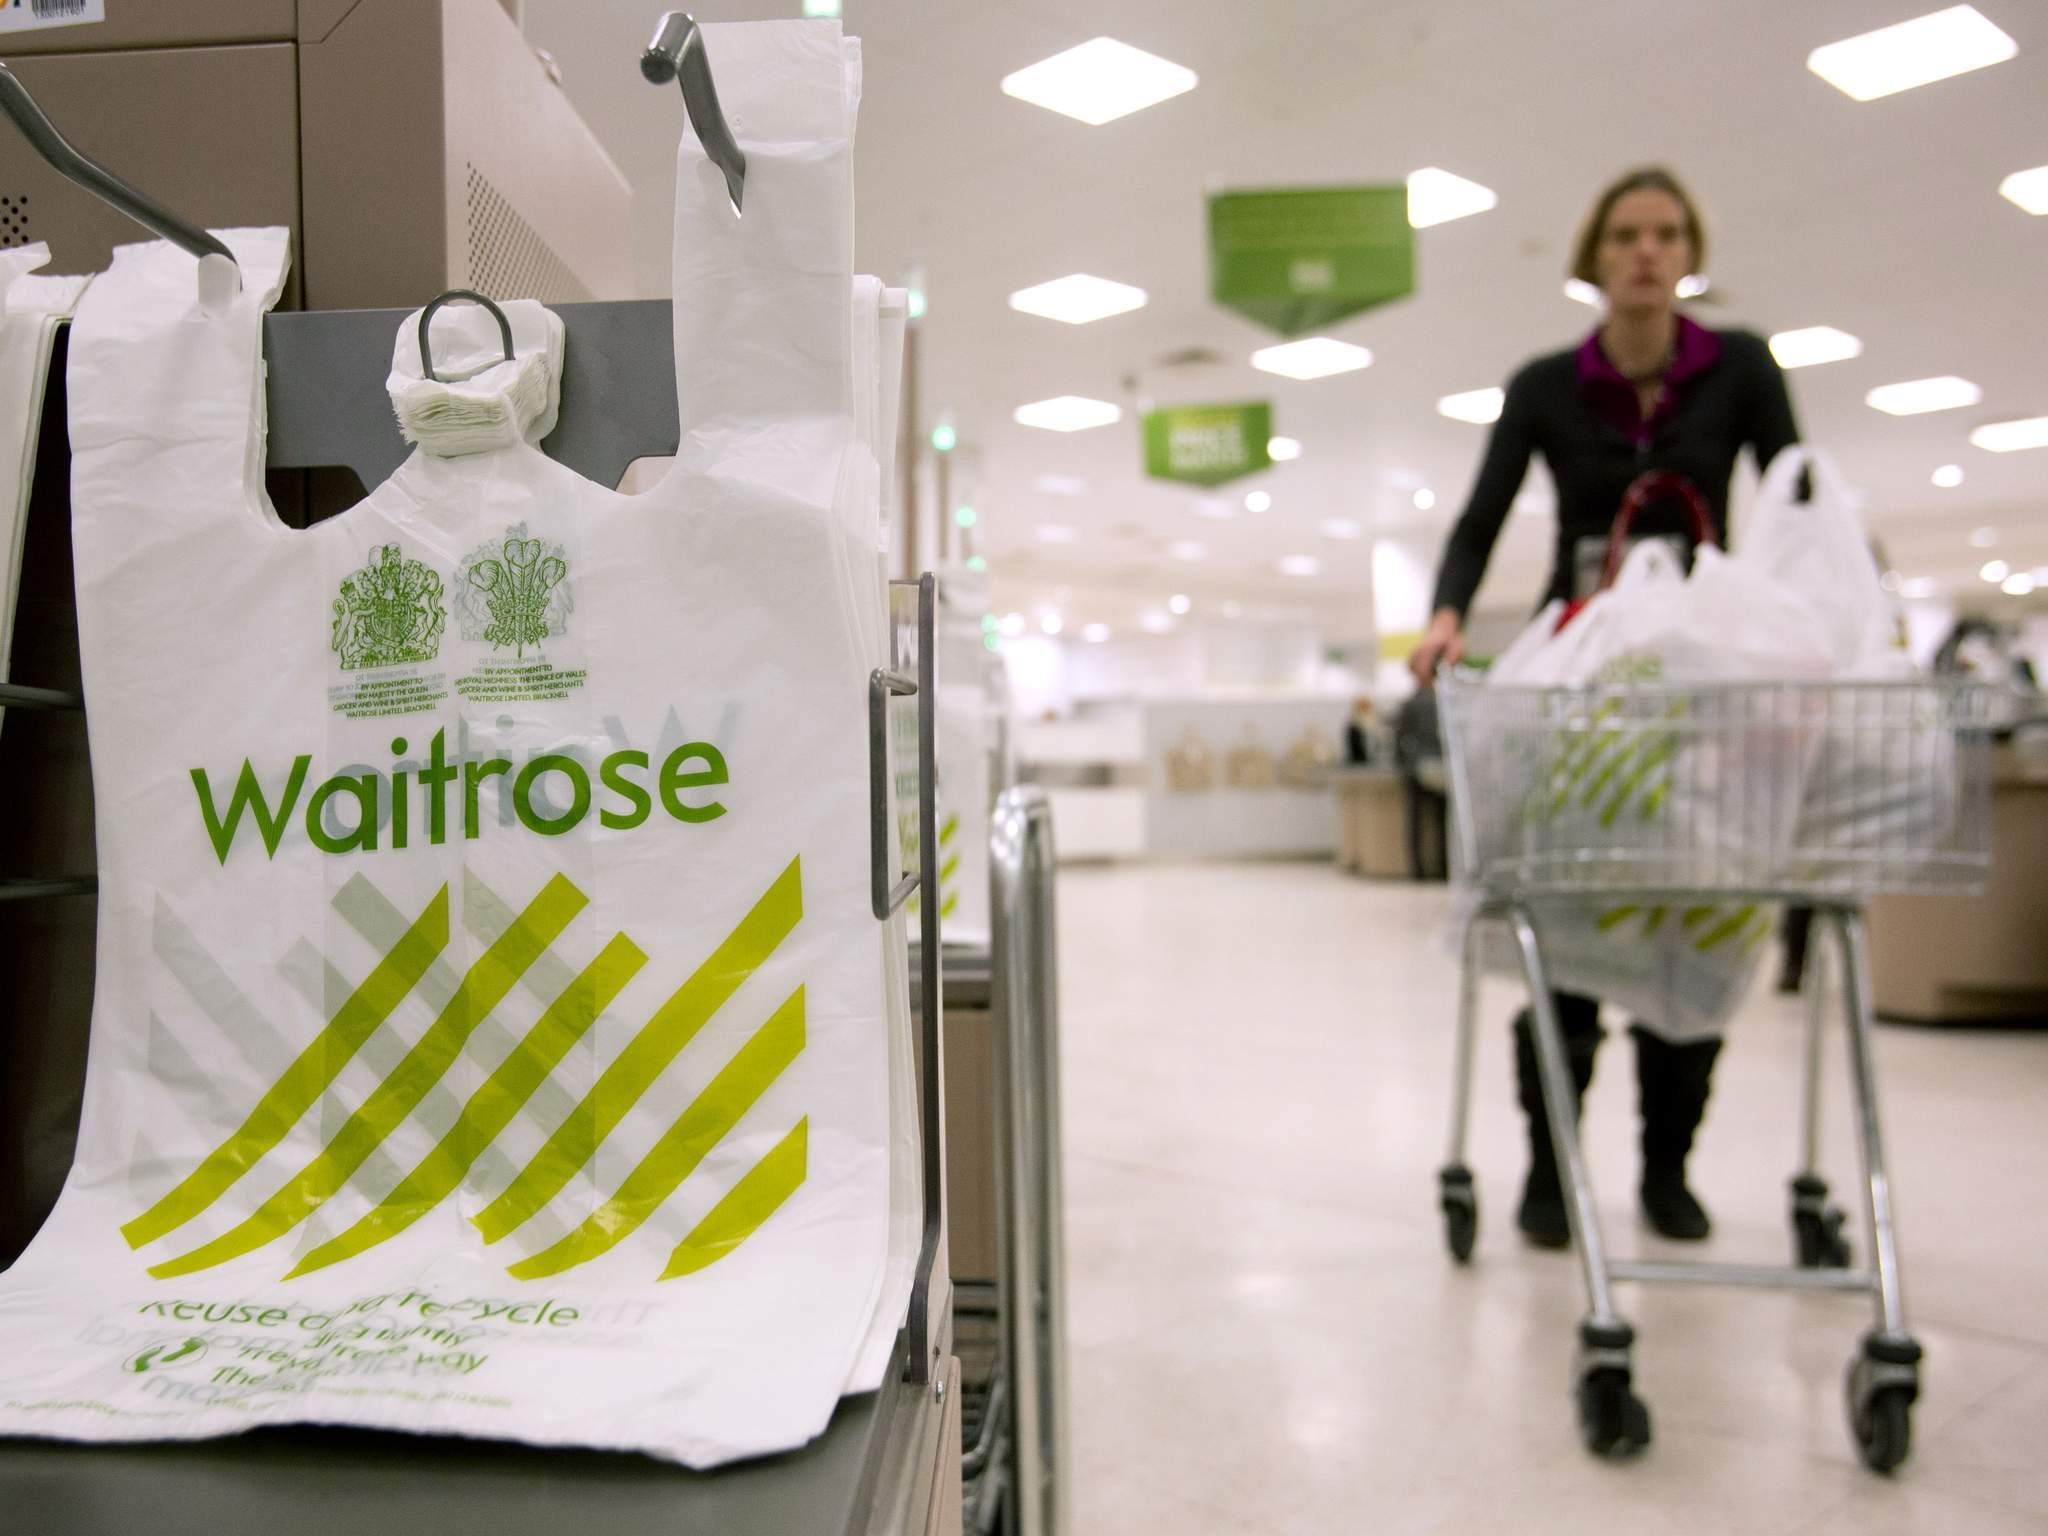 sainsbury s and waitrose uk supermarkets porter s 5 forces Porters 5 forces on tesco analysis of the uk grocery retail industry porter's five forces look's into the external sainsbury, morrison and waitrose.